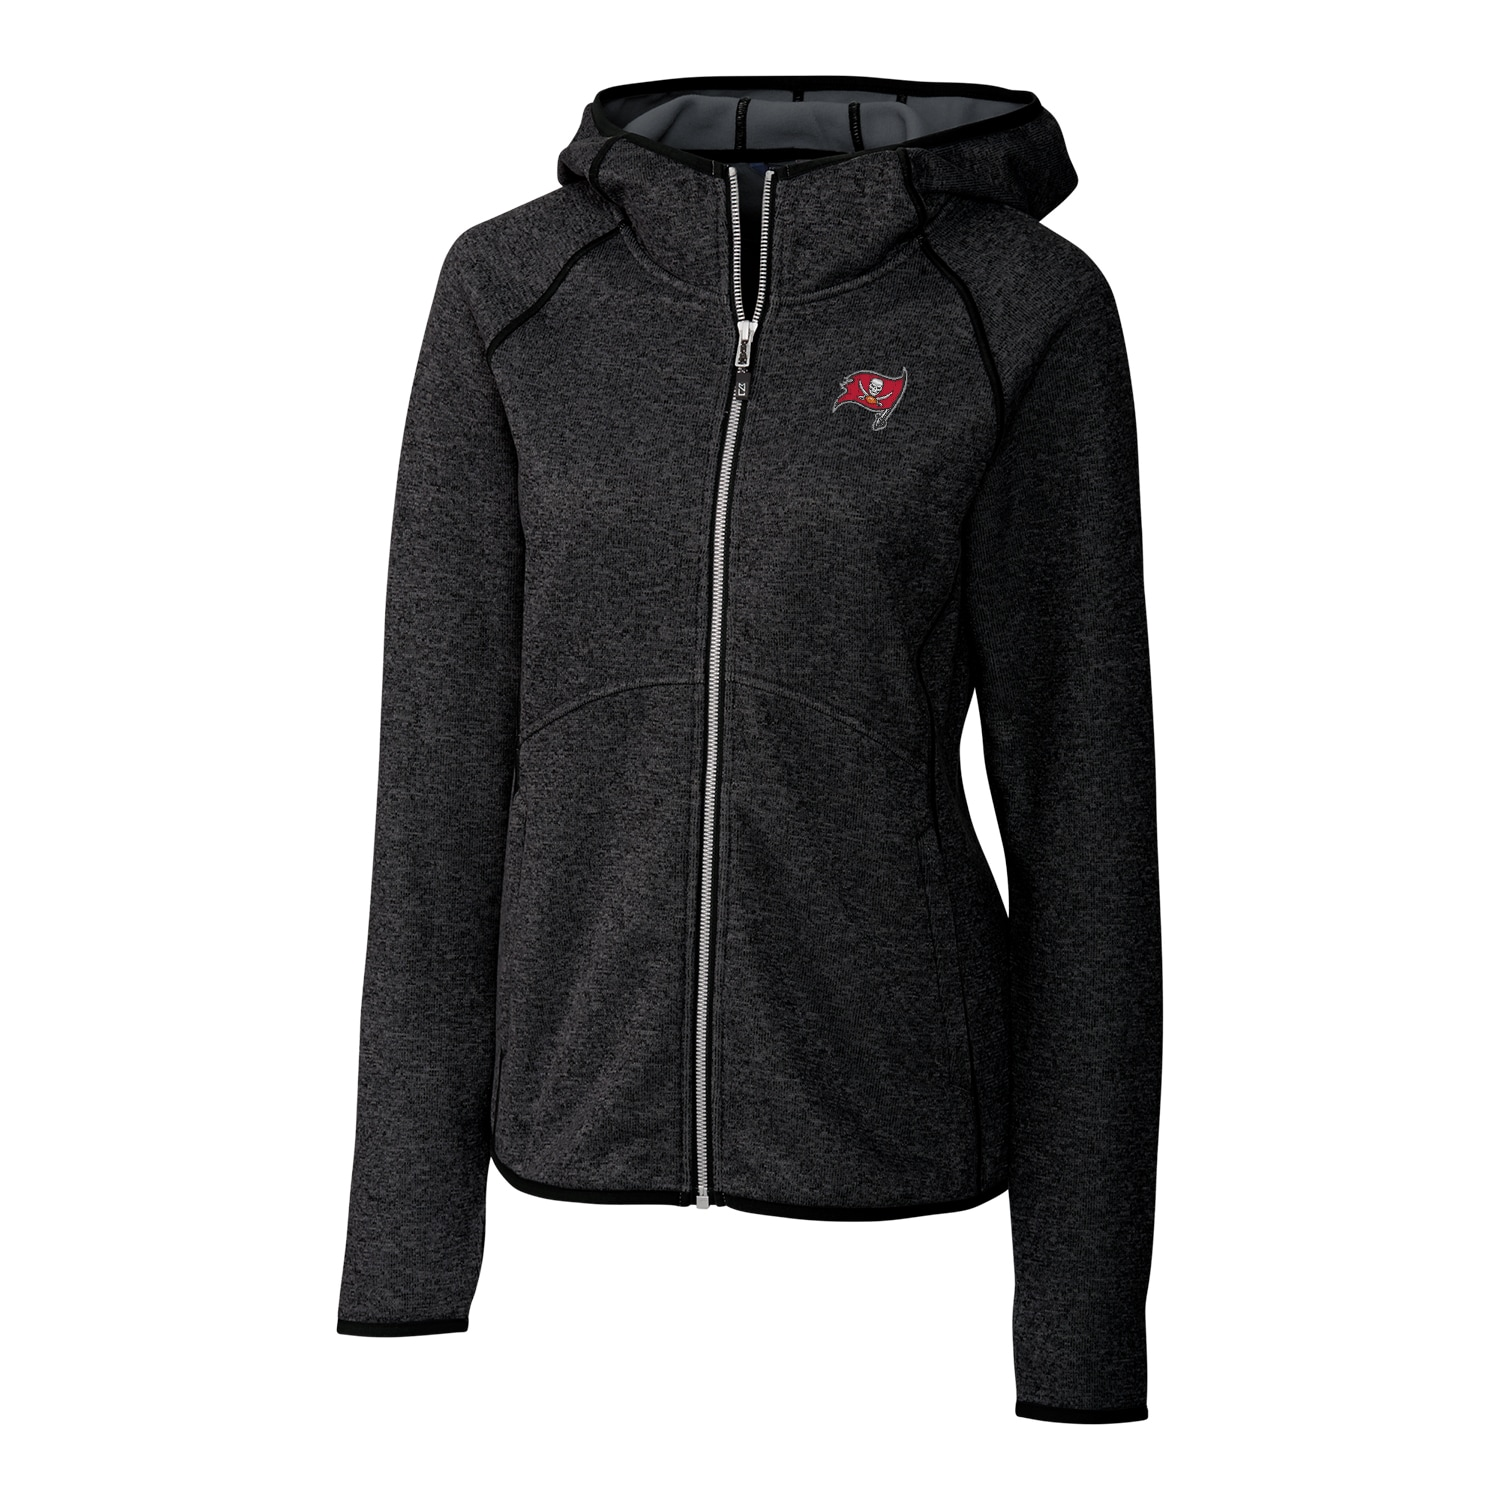 Tampa Bay Buccaneers Cutter & Buck Women's Mainsail Full-Zip Jacket - Black